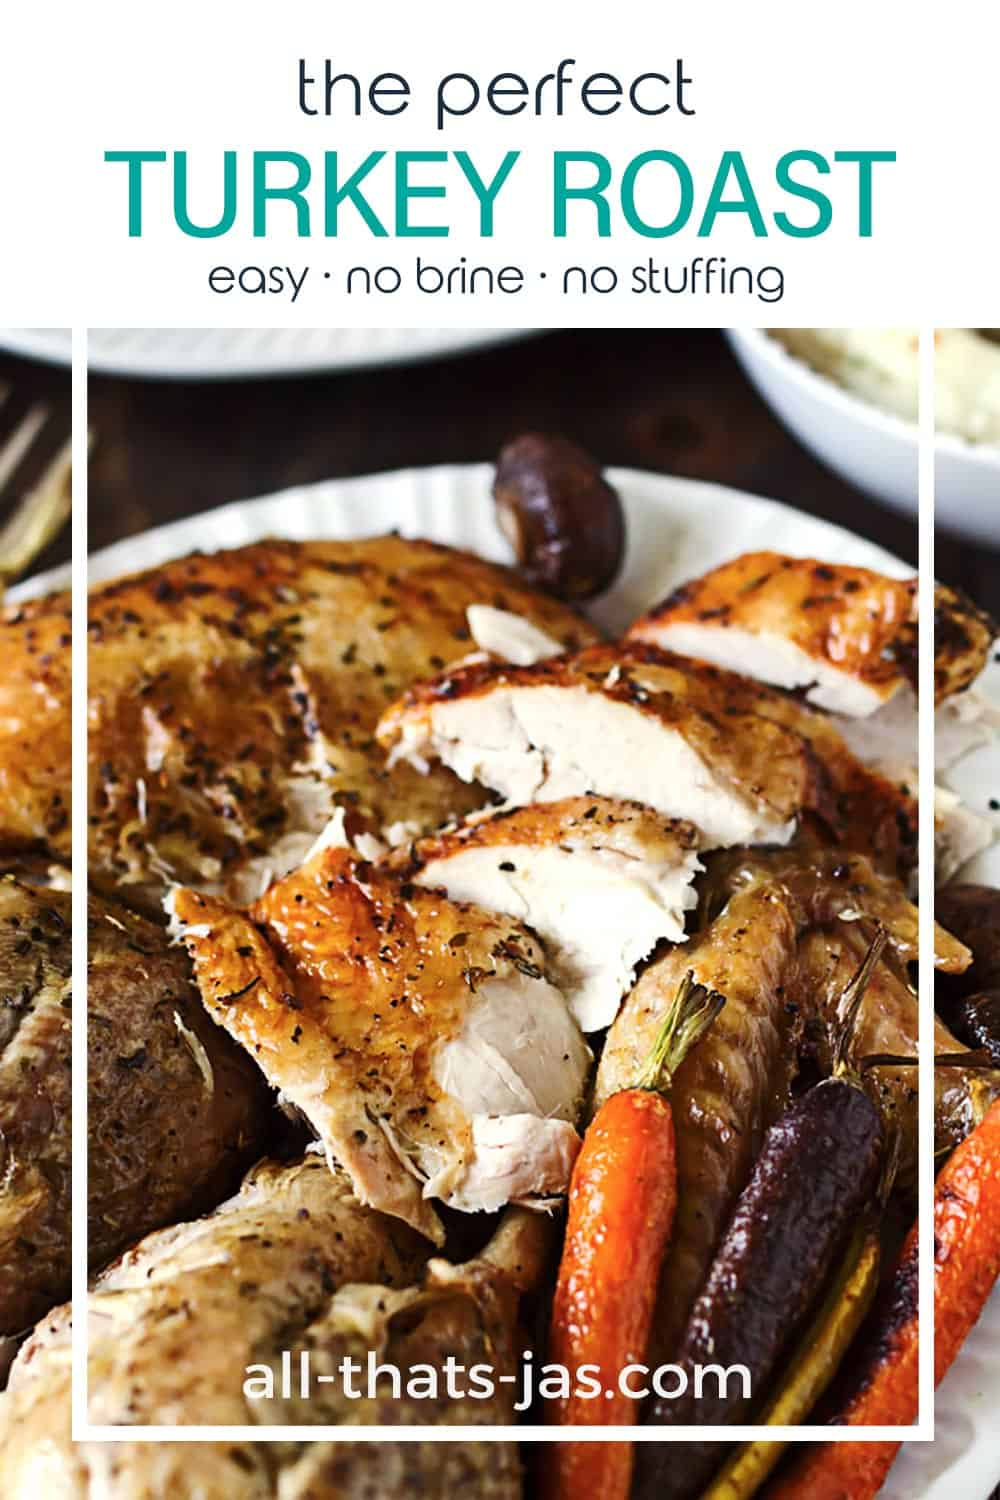 A close up of turkey slices with text overlay.